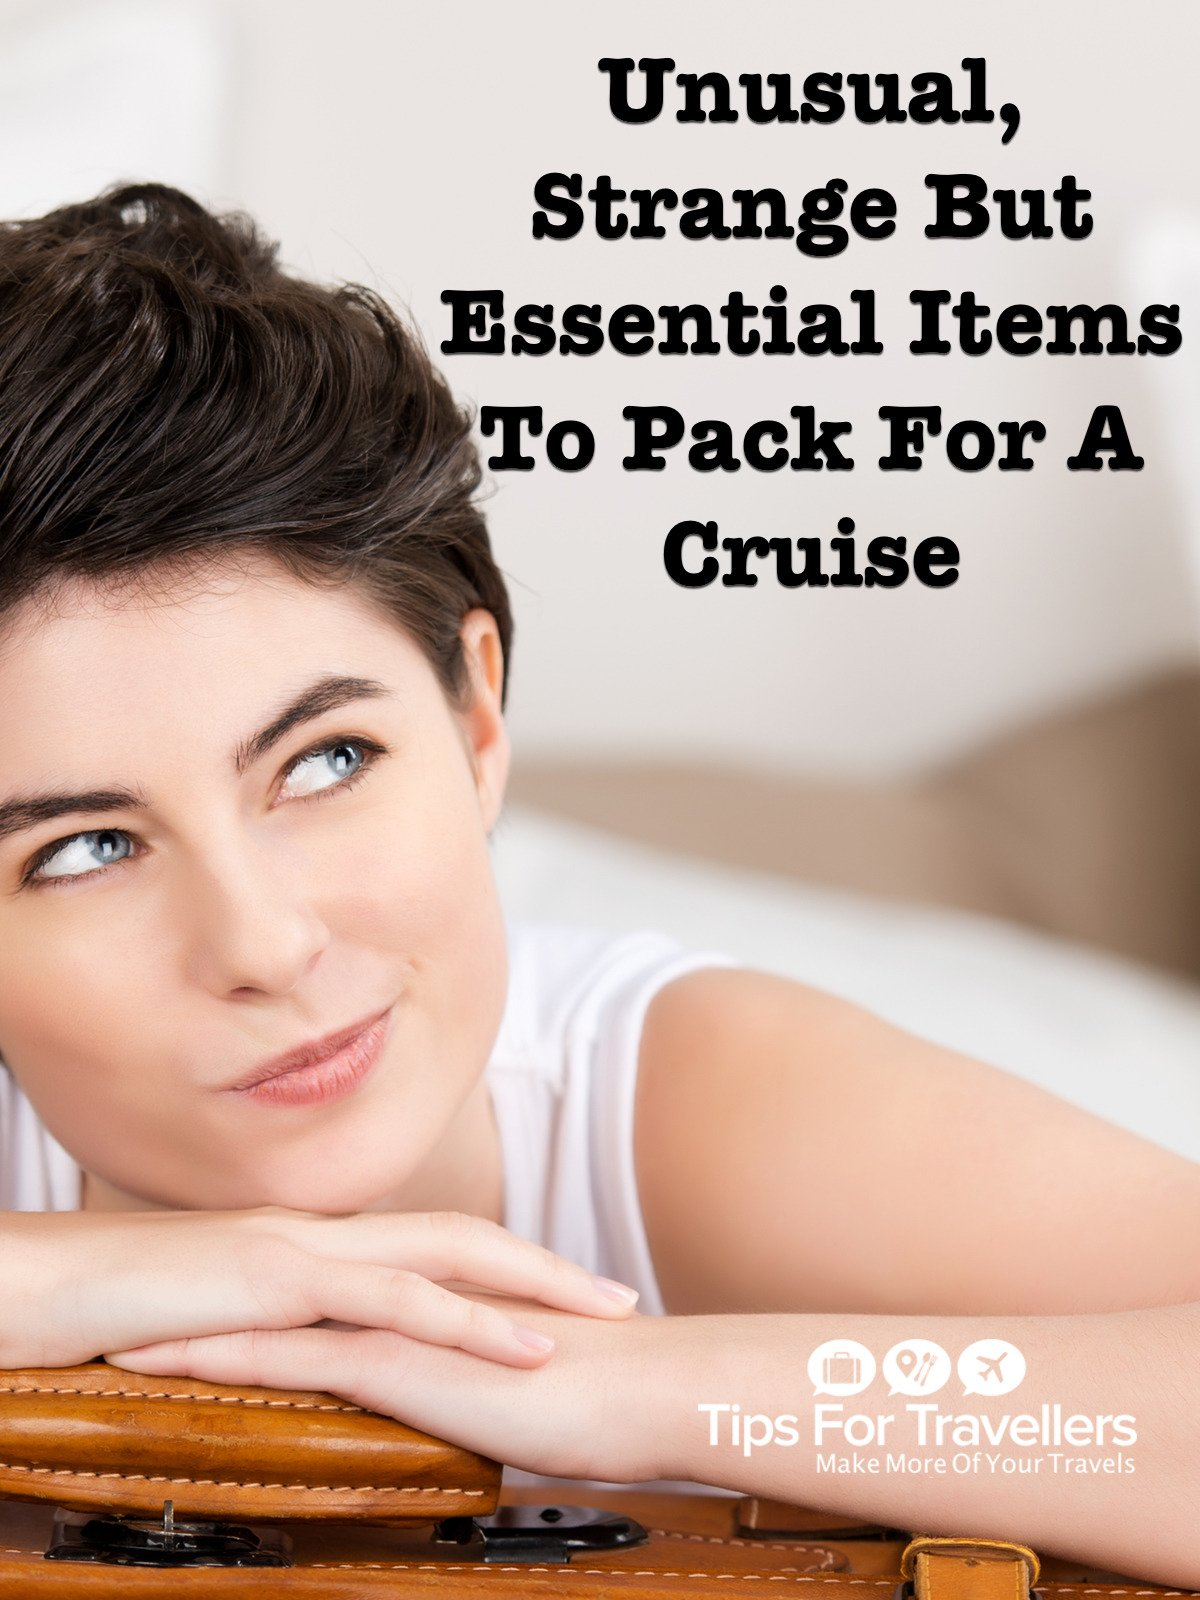 Clip: Unusual, Strange But Essential Items To Pack For A Cruise on Amazon Prime Instant Video UK